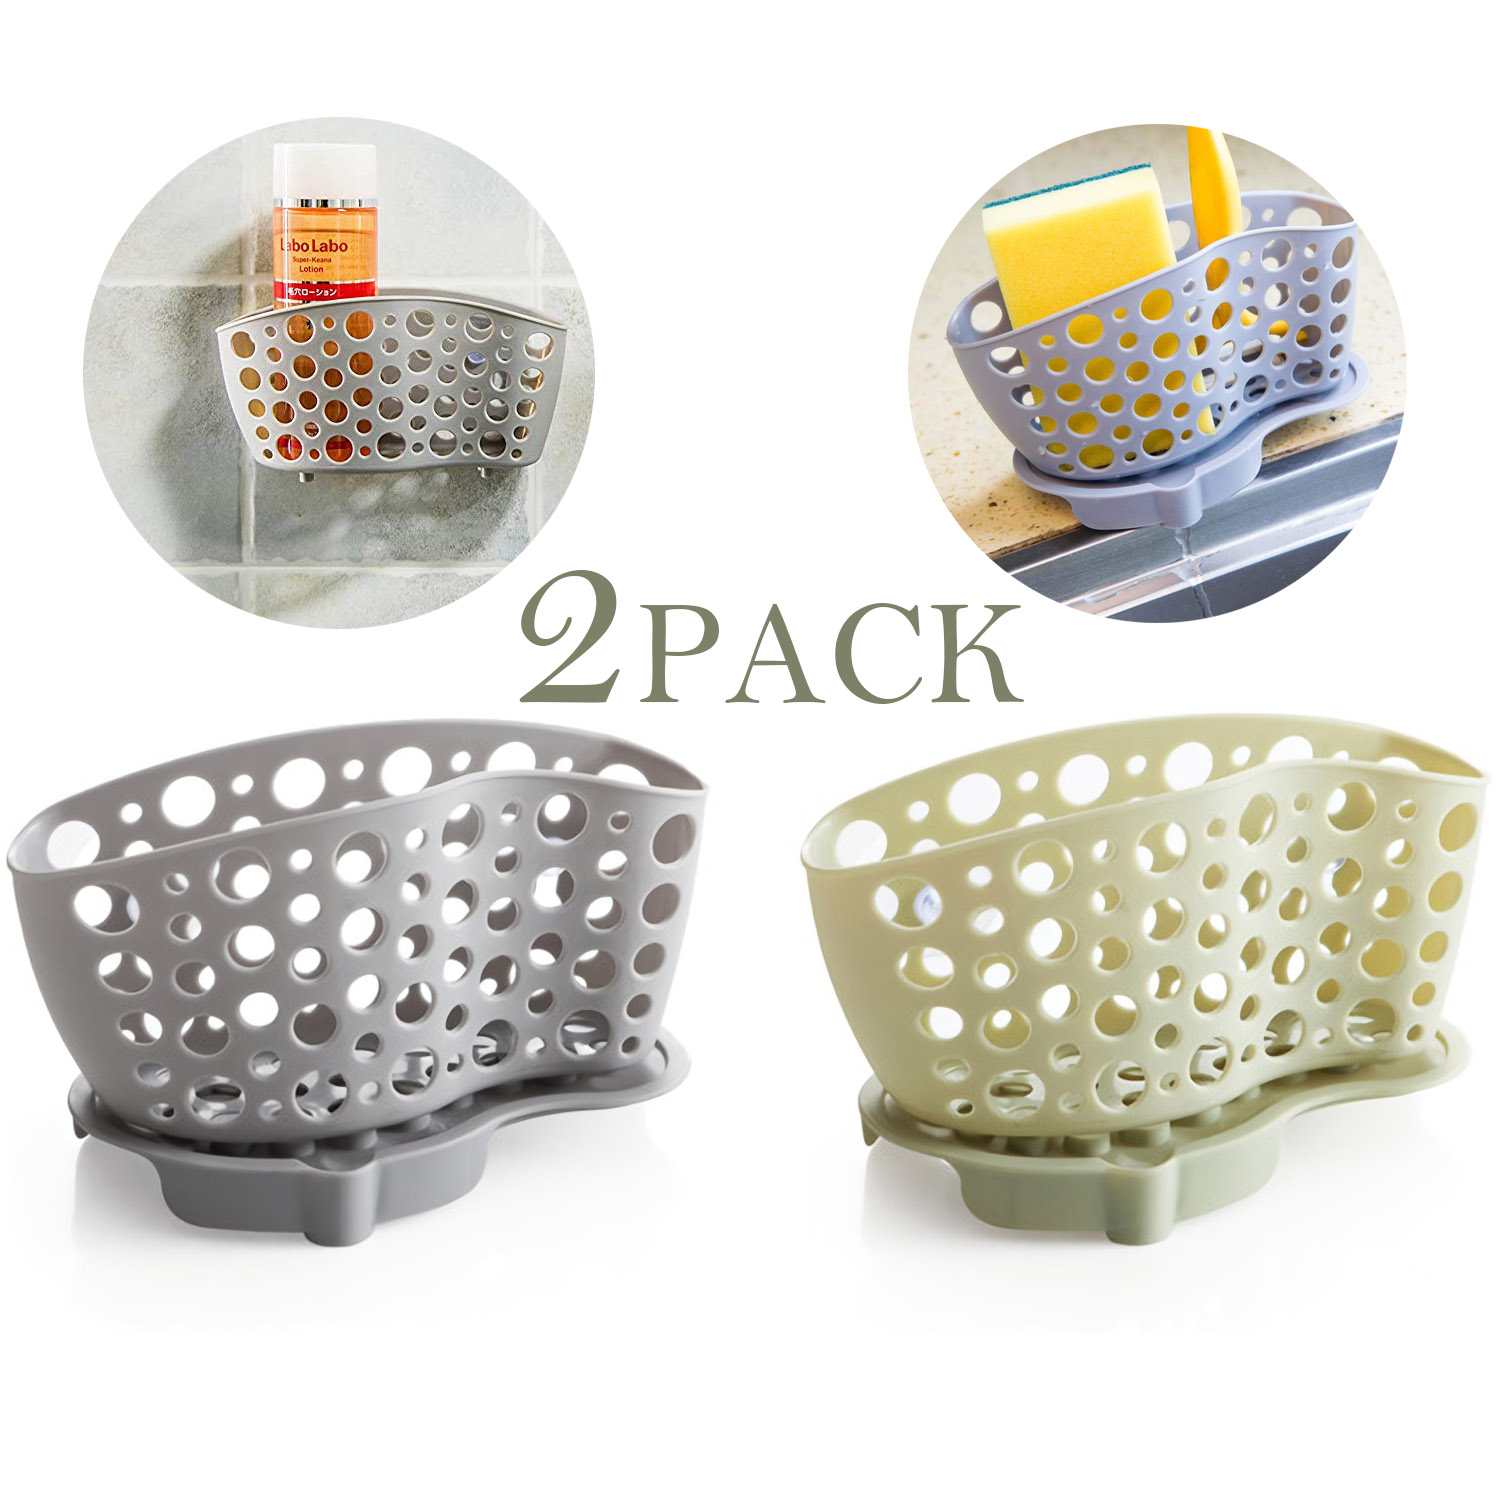 2PACK Kitchen Sink Caddy Organizer Sponge Holder Soap Holder Saddle Faucet Caddy (Random Color)